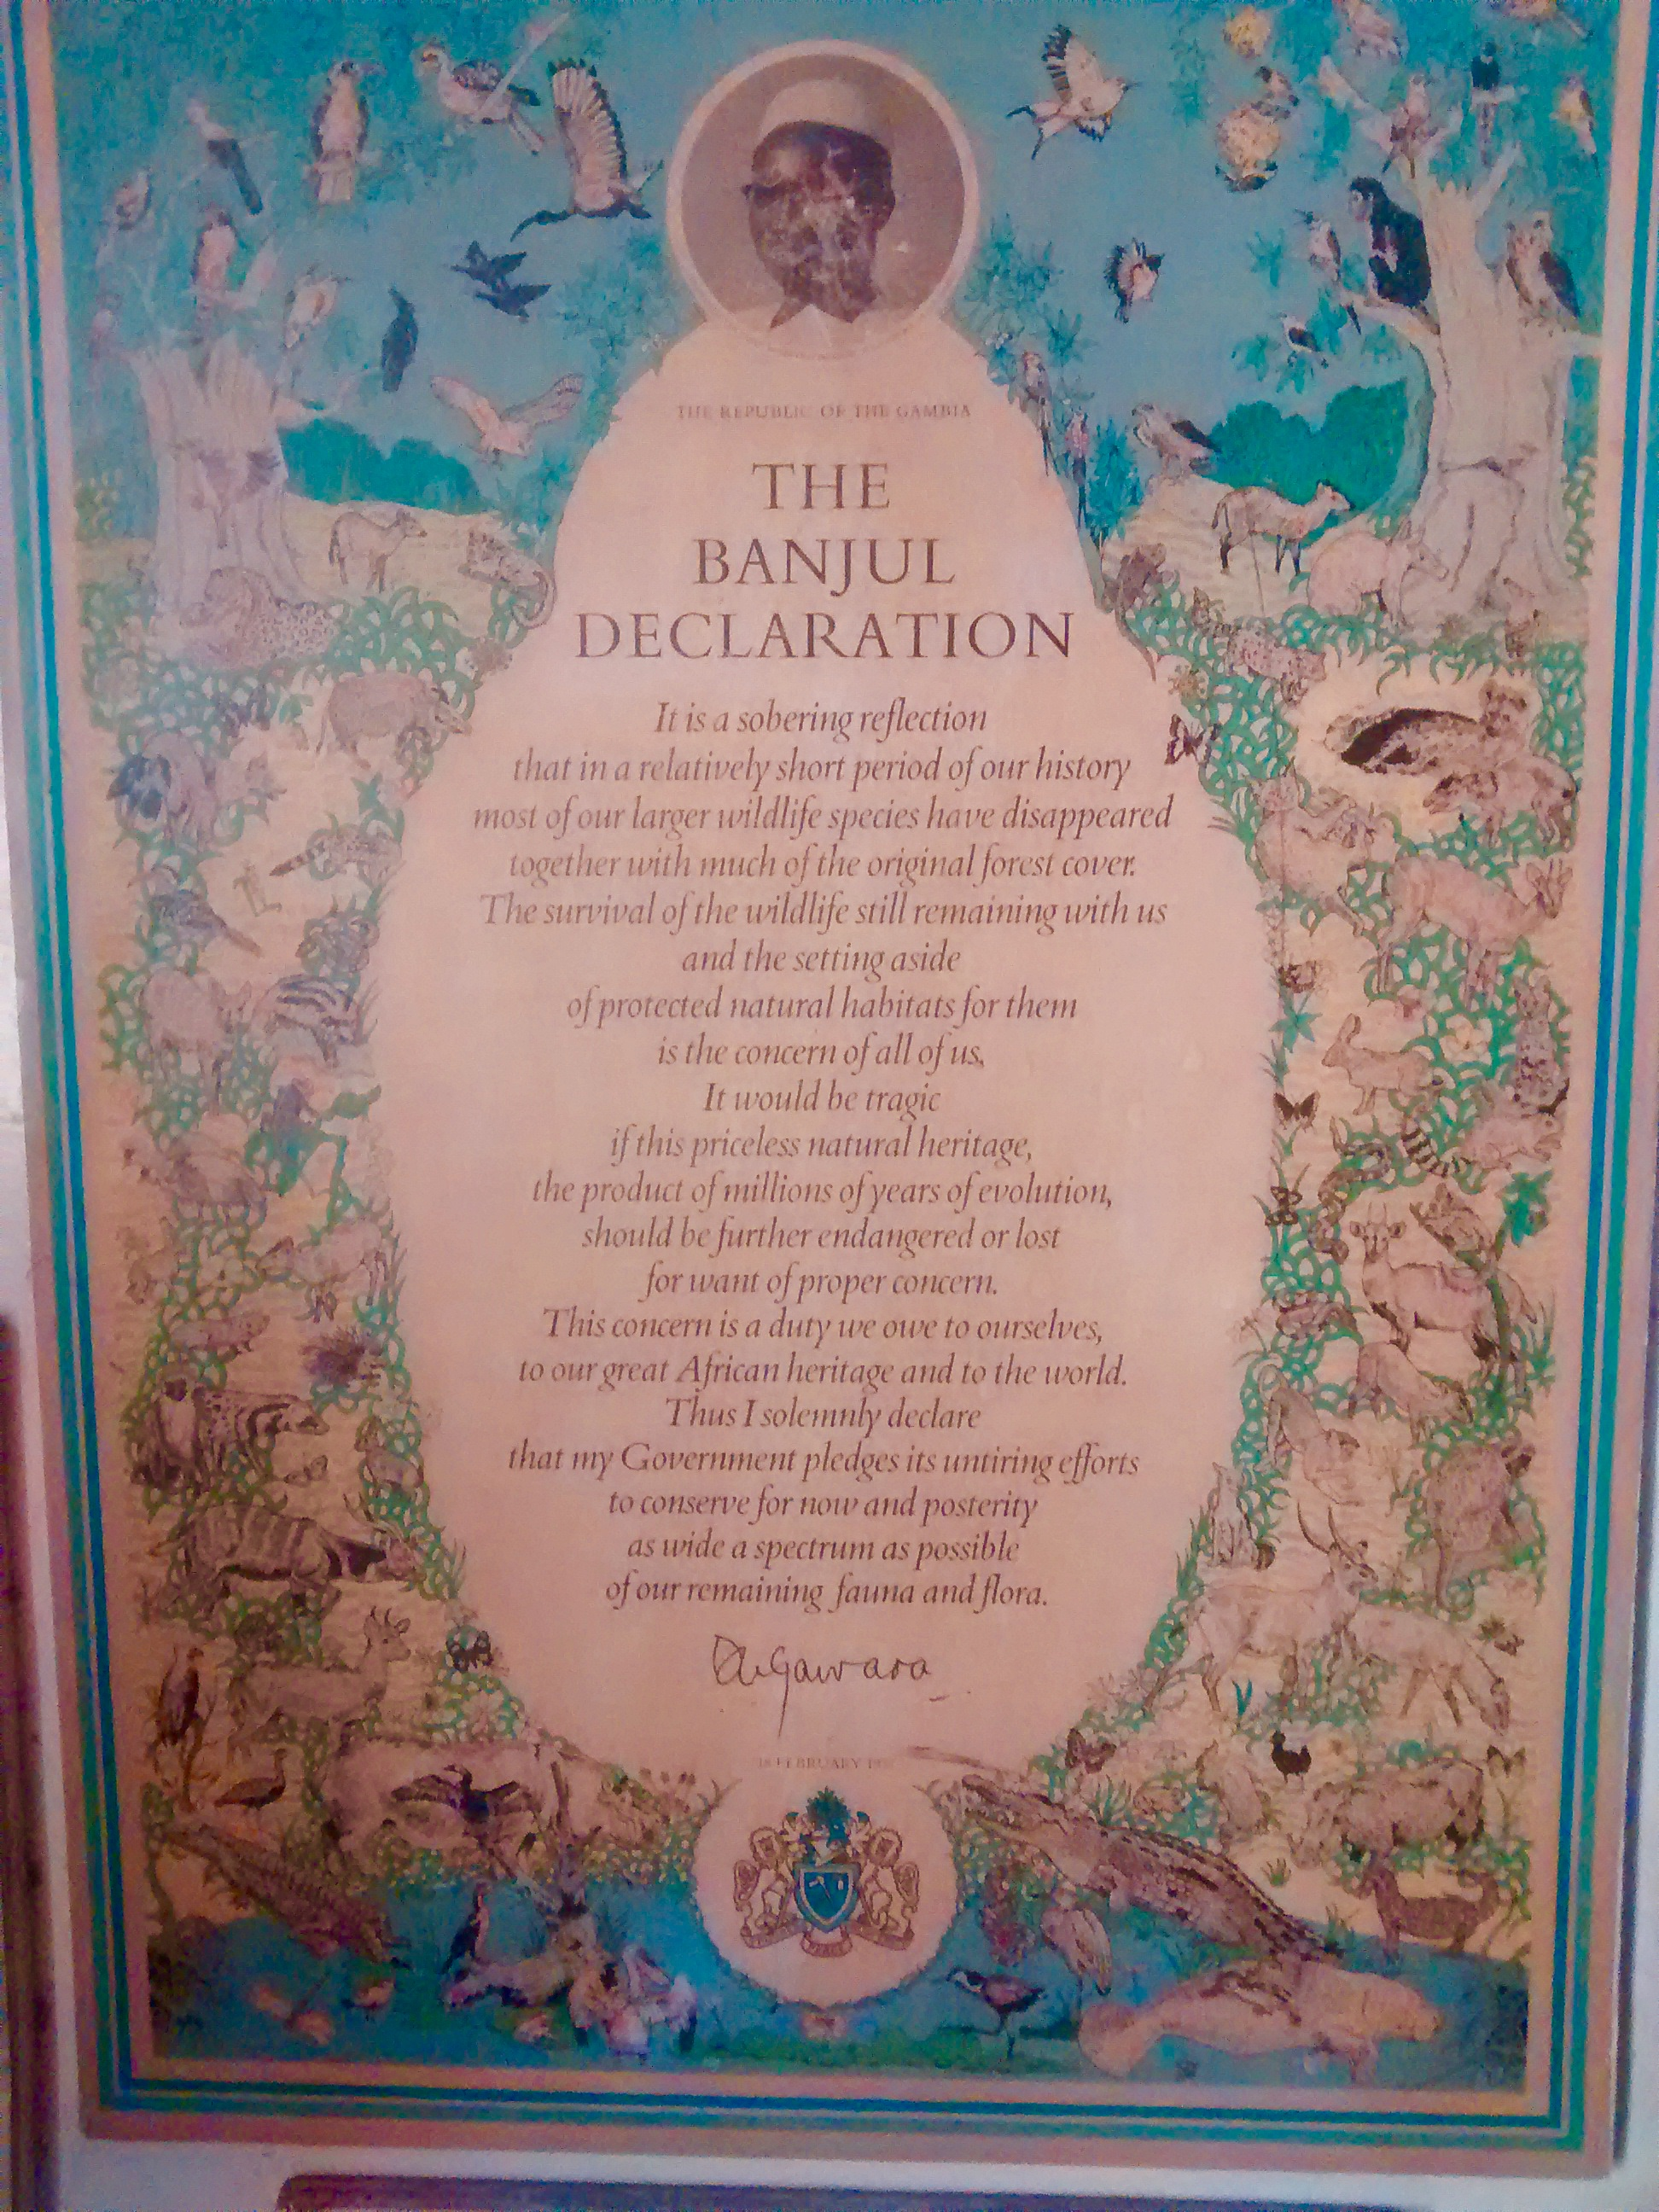 This declaration for conservation is from 1977 made by the President at the time Sir Dawda Kairaba Jawarra. Wise man.